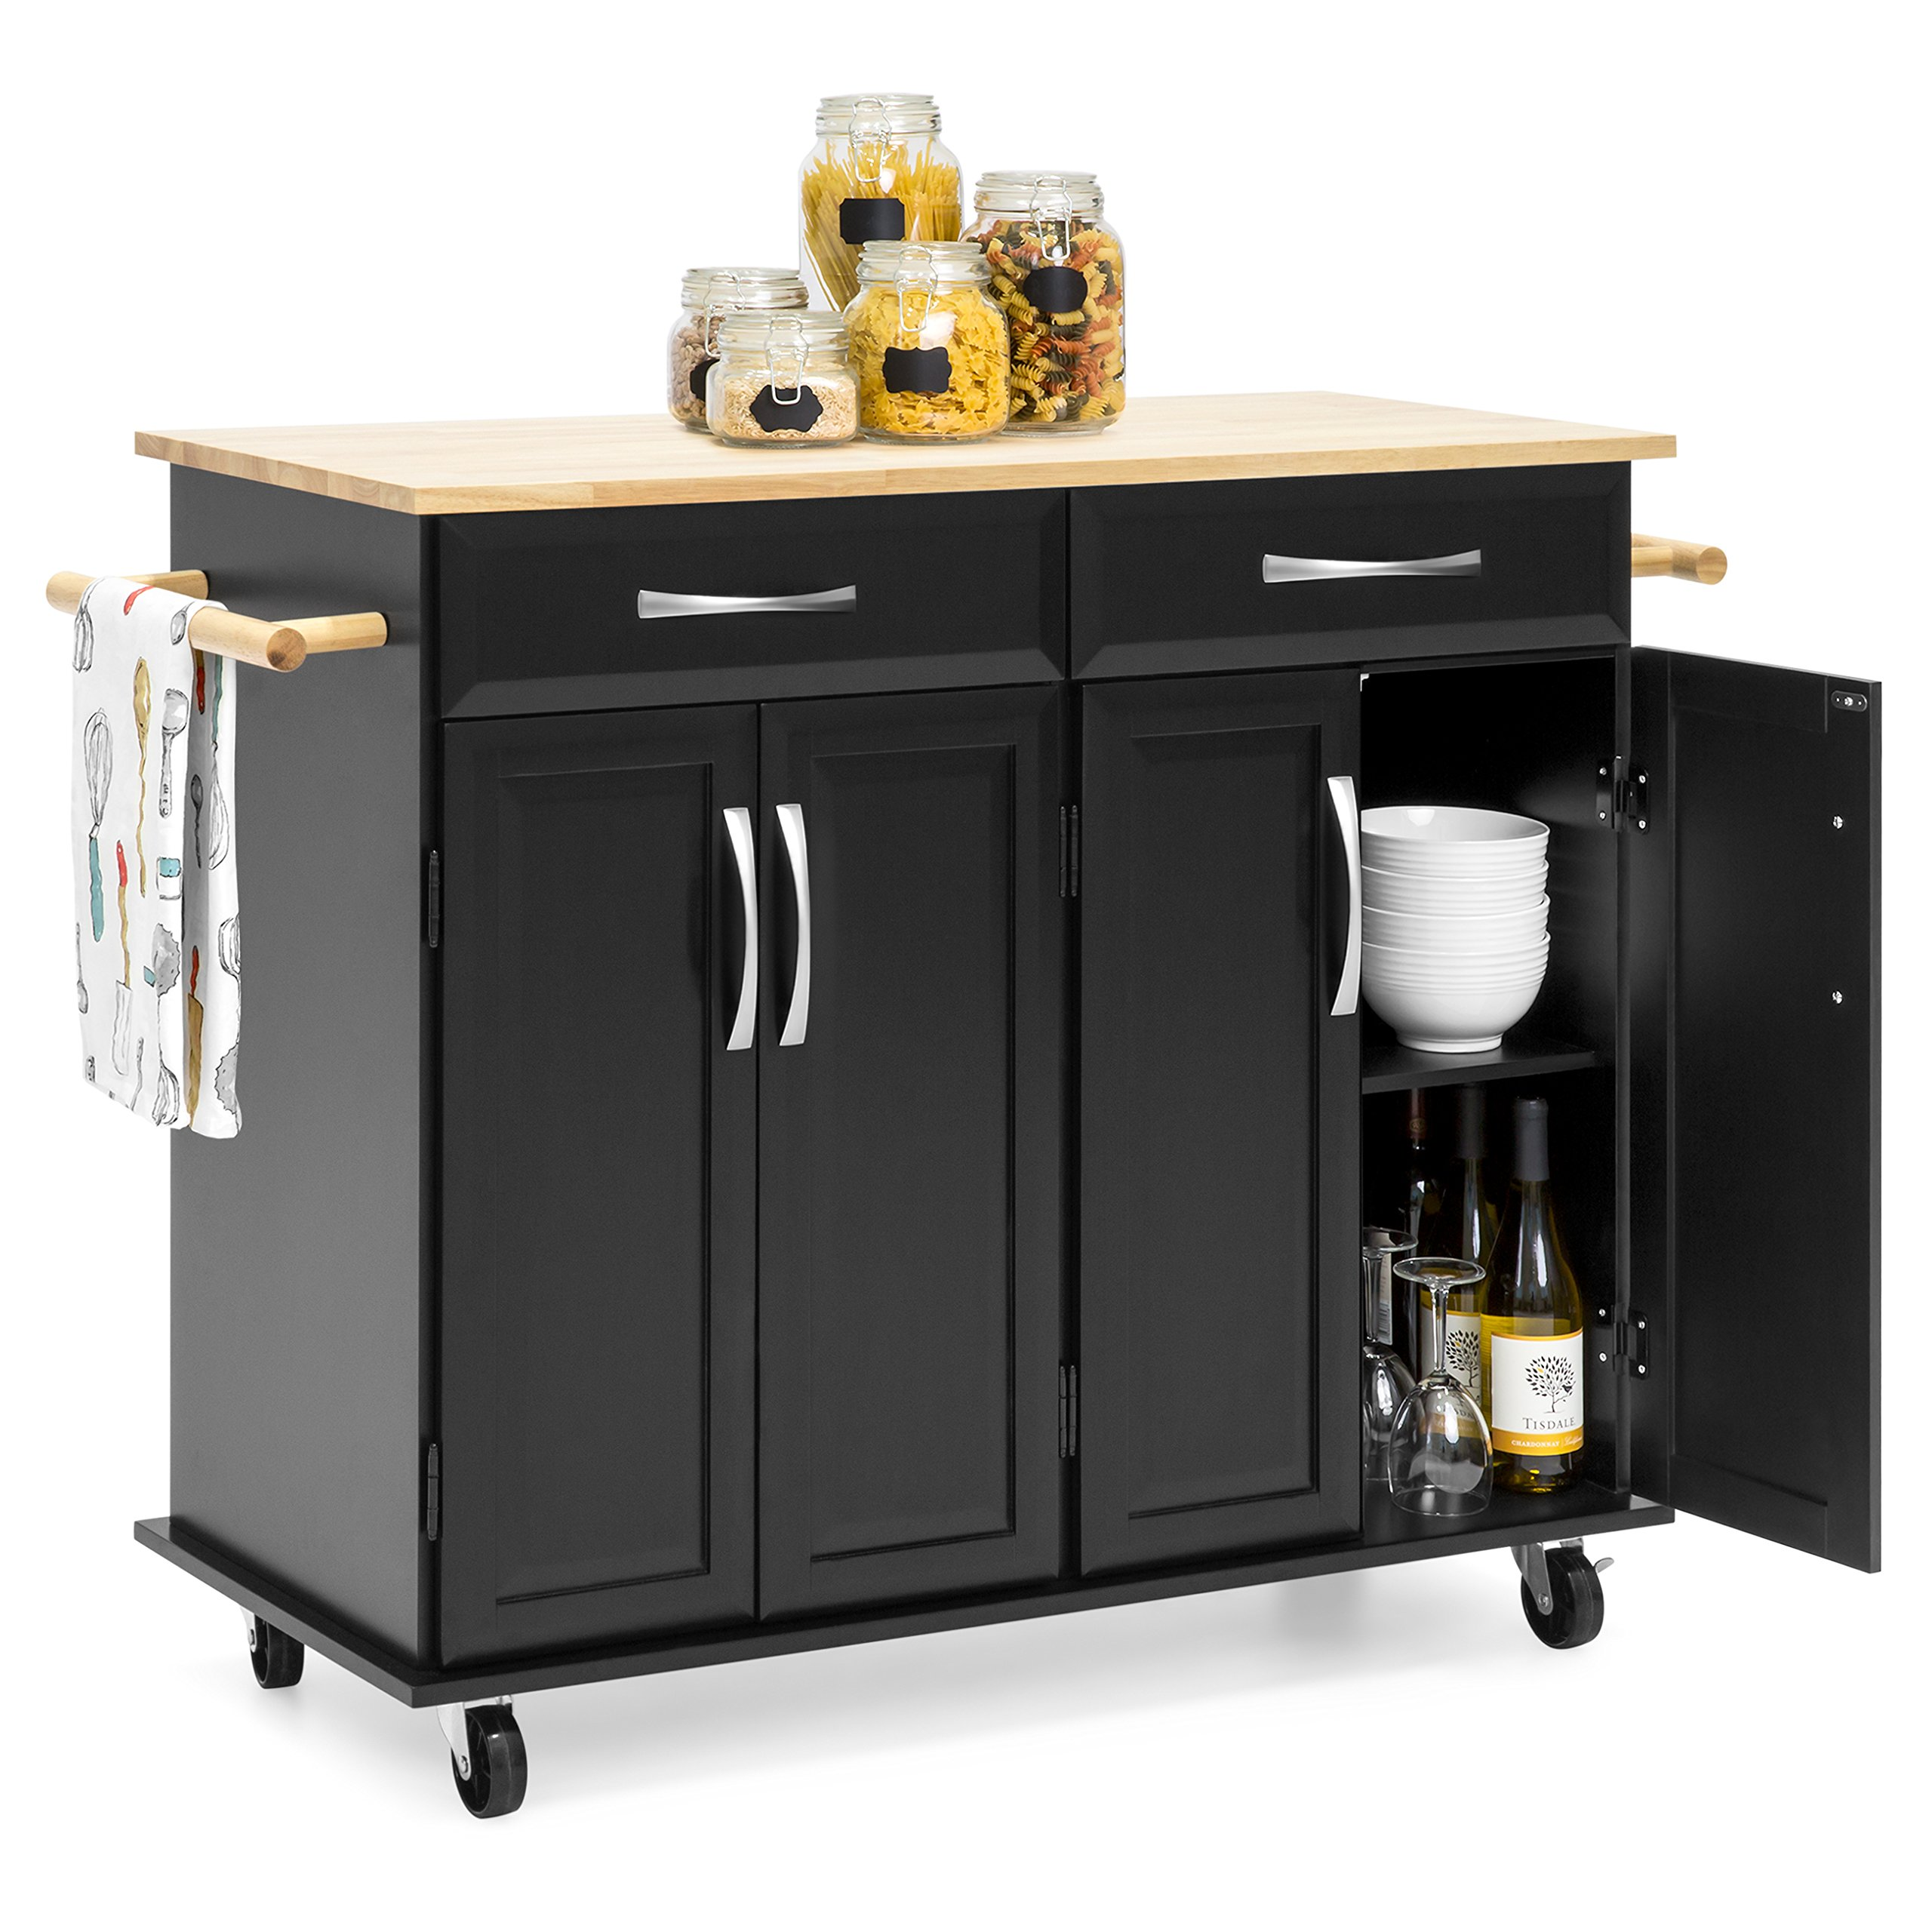 Best Choice Products Portable Kitchen Island Cart w/Wood Top, 2 Towel Racks, Drawers, Cabinets, Adjustable Shelves by Best Choice Products